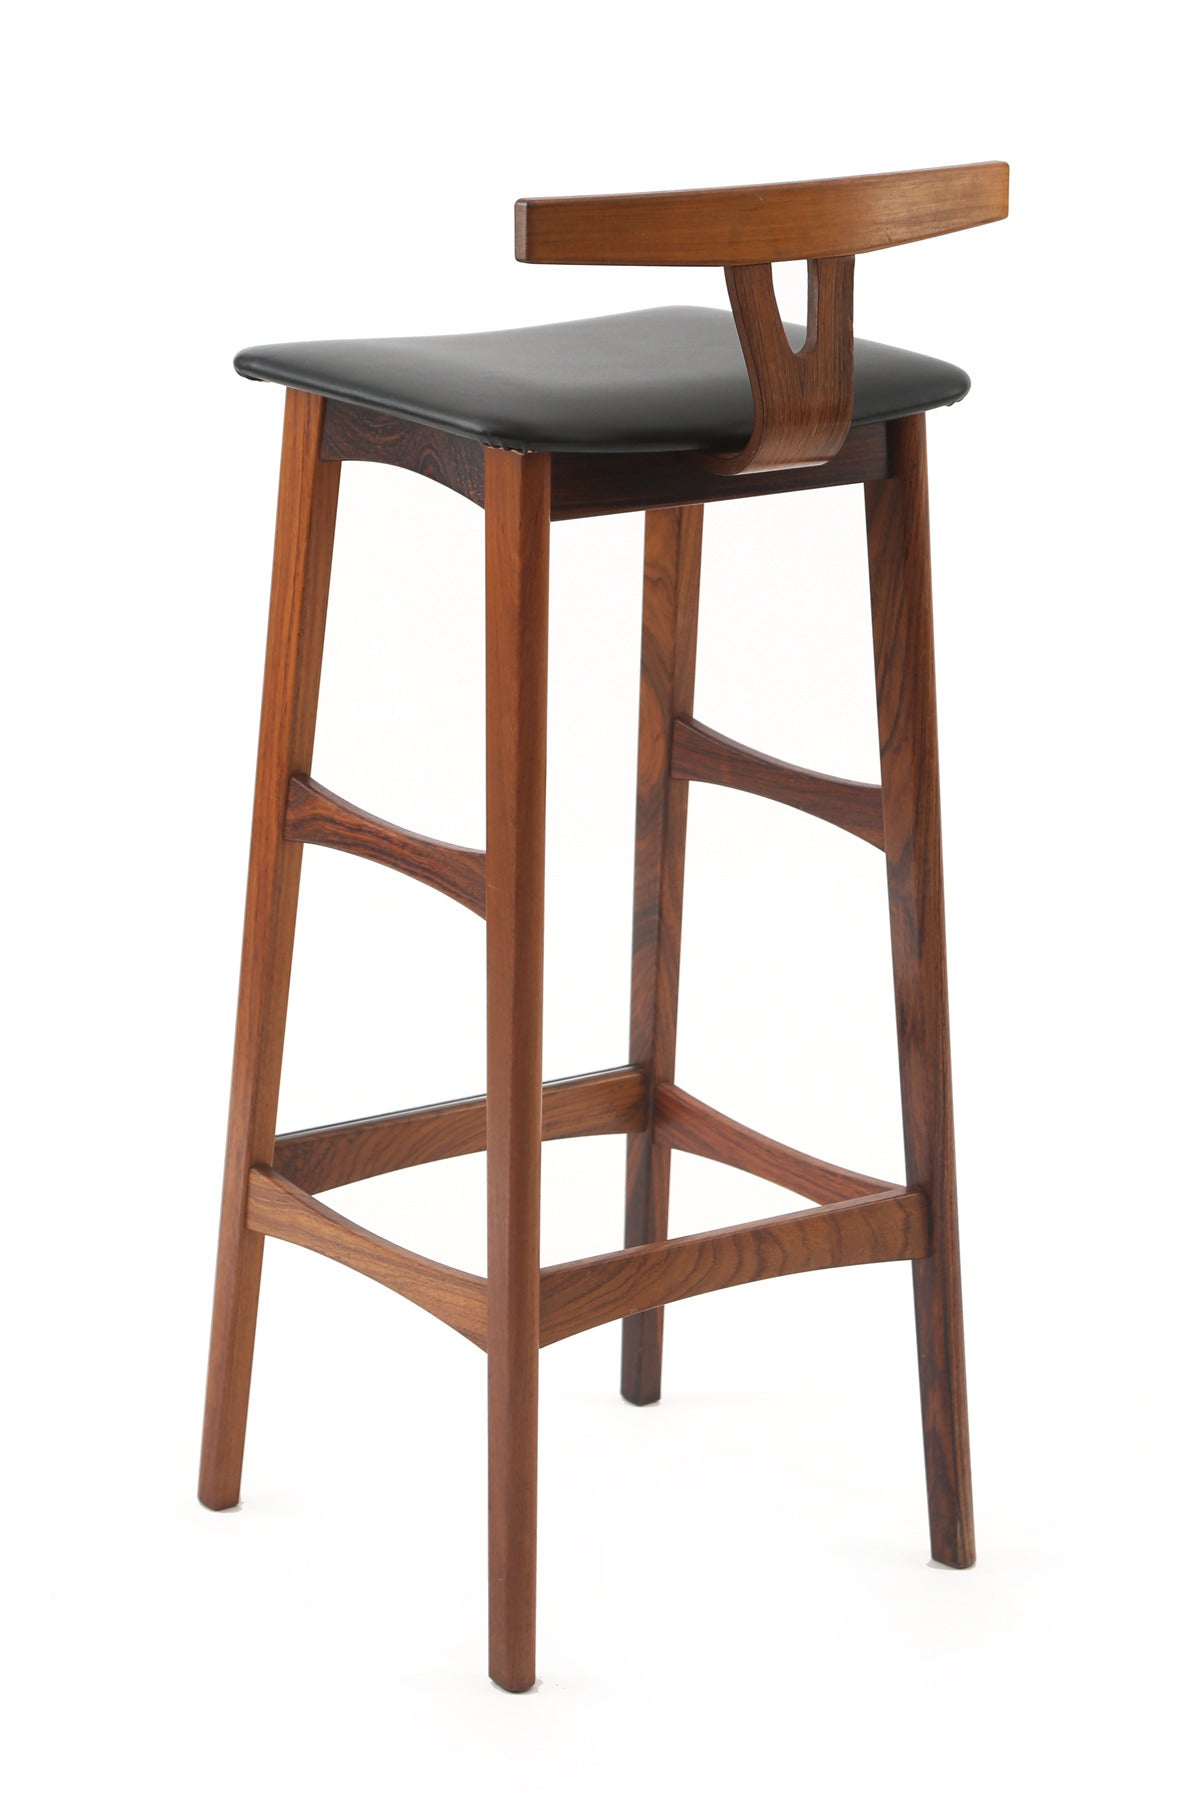 Three Solid Rosewood Barstools By Dyrlund At 1stdibs